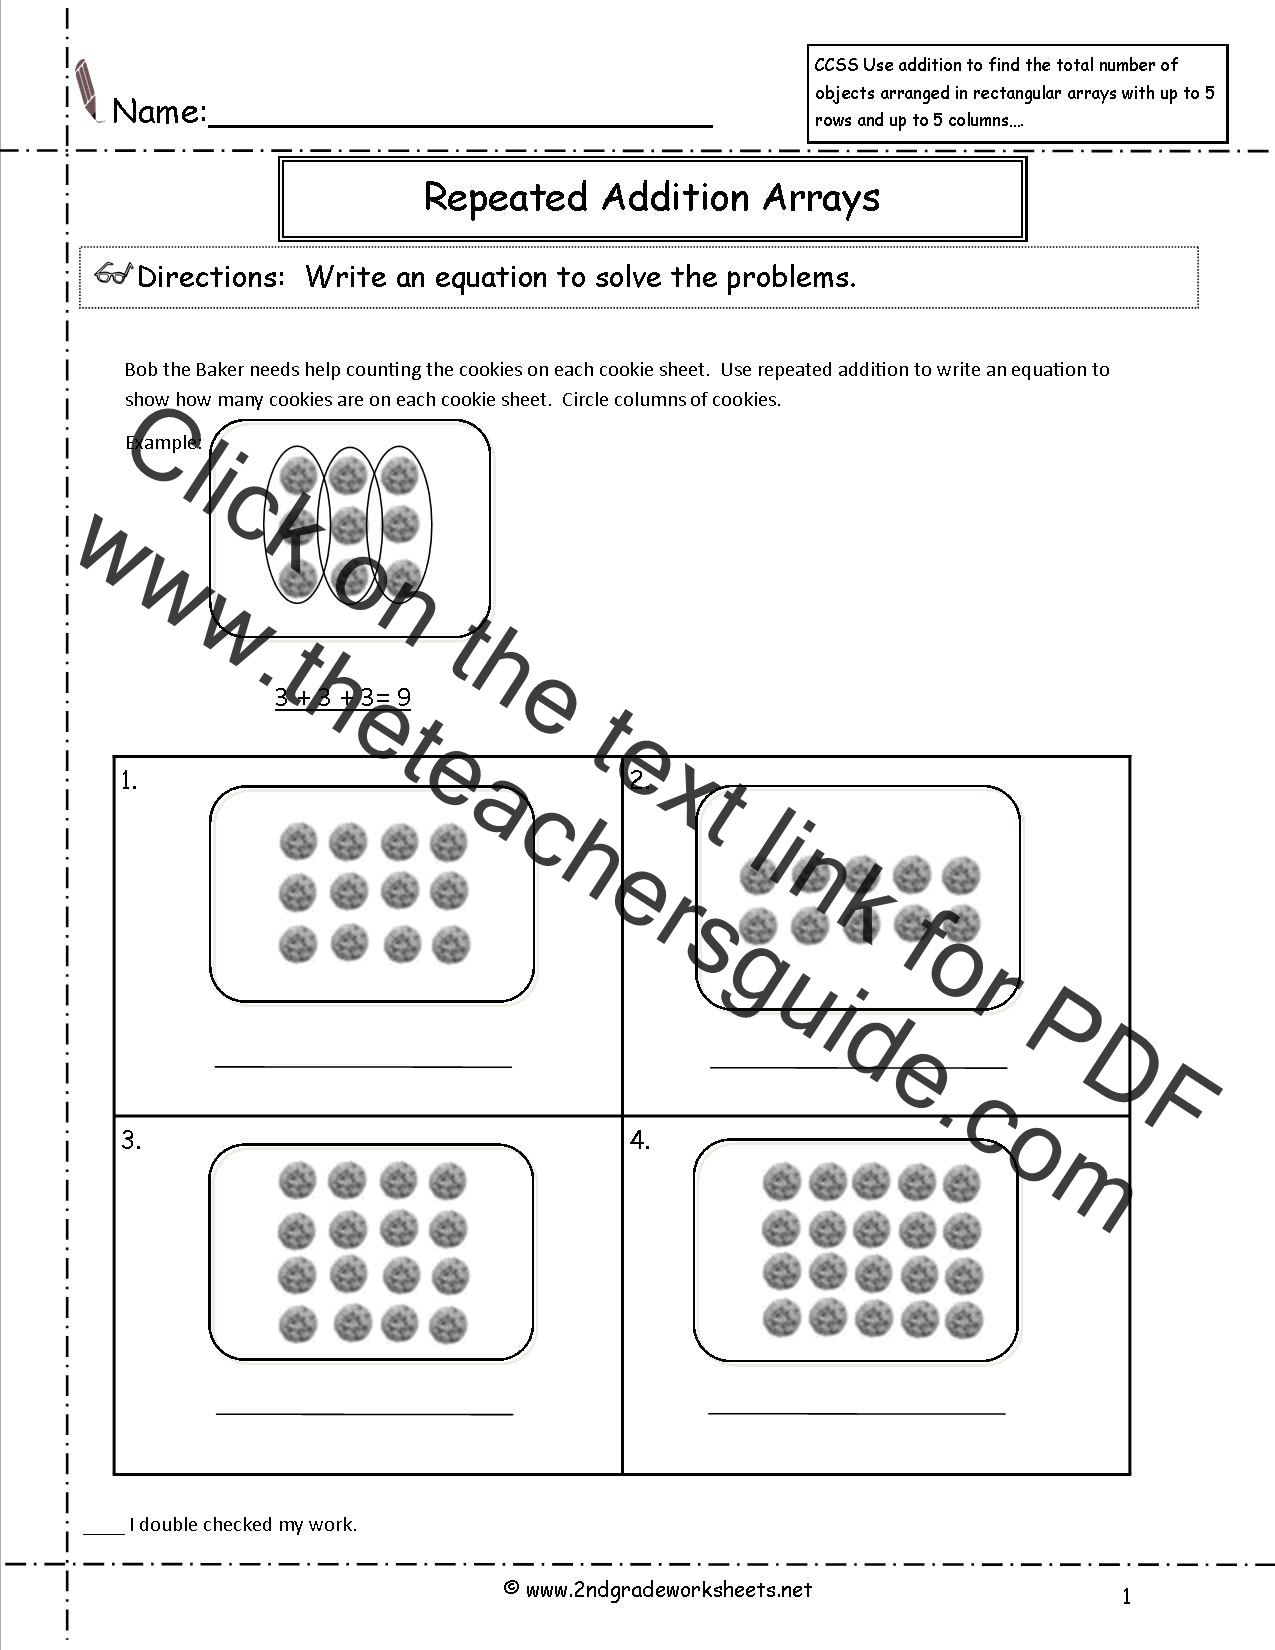 nd grade math common core state standards worksheets ccss oa worksheets